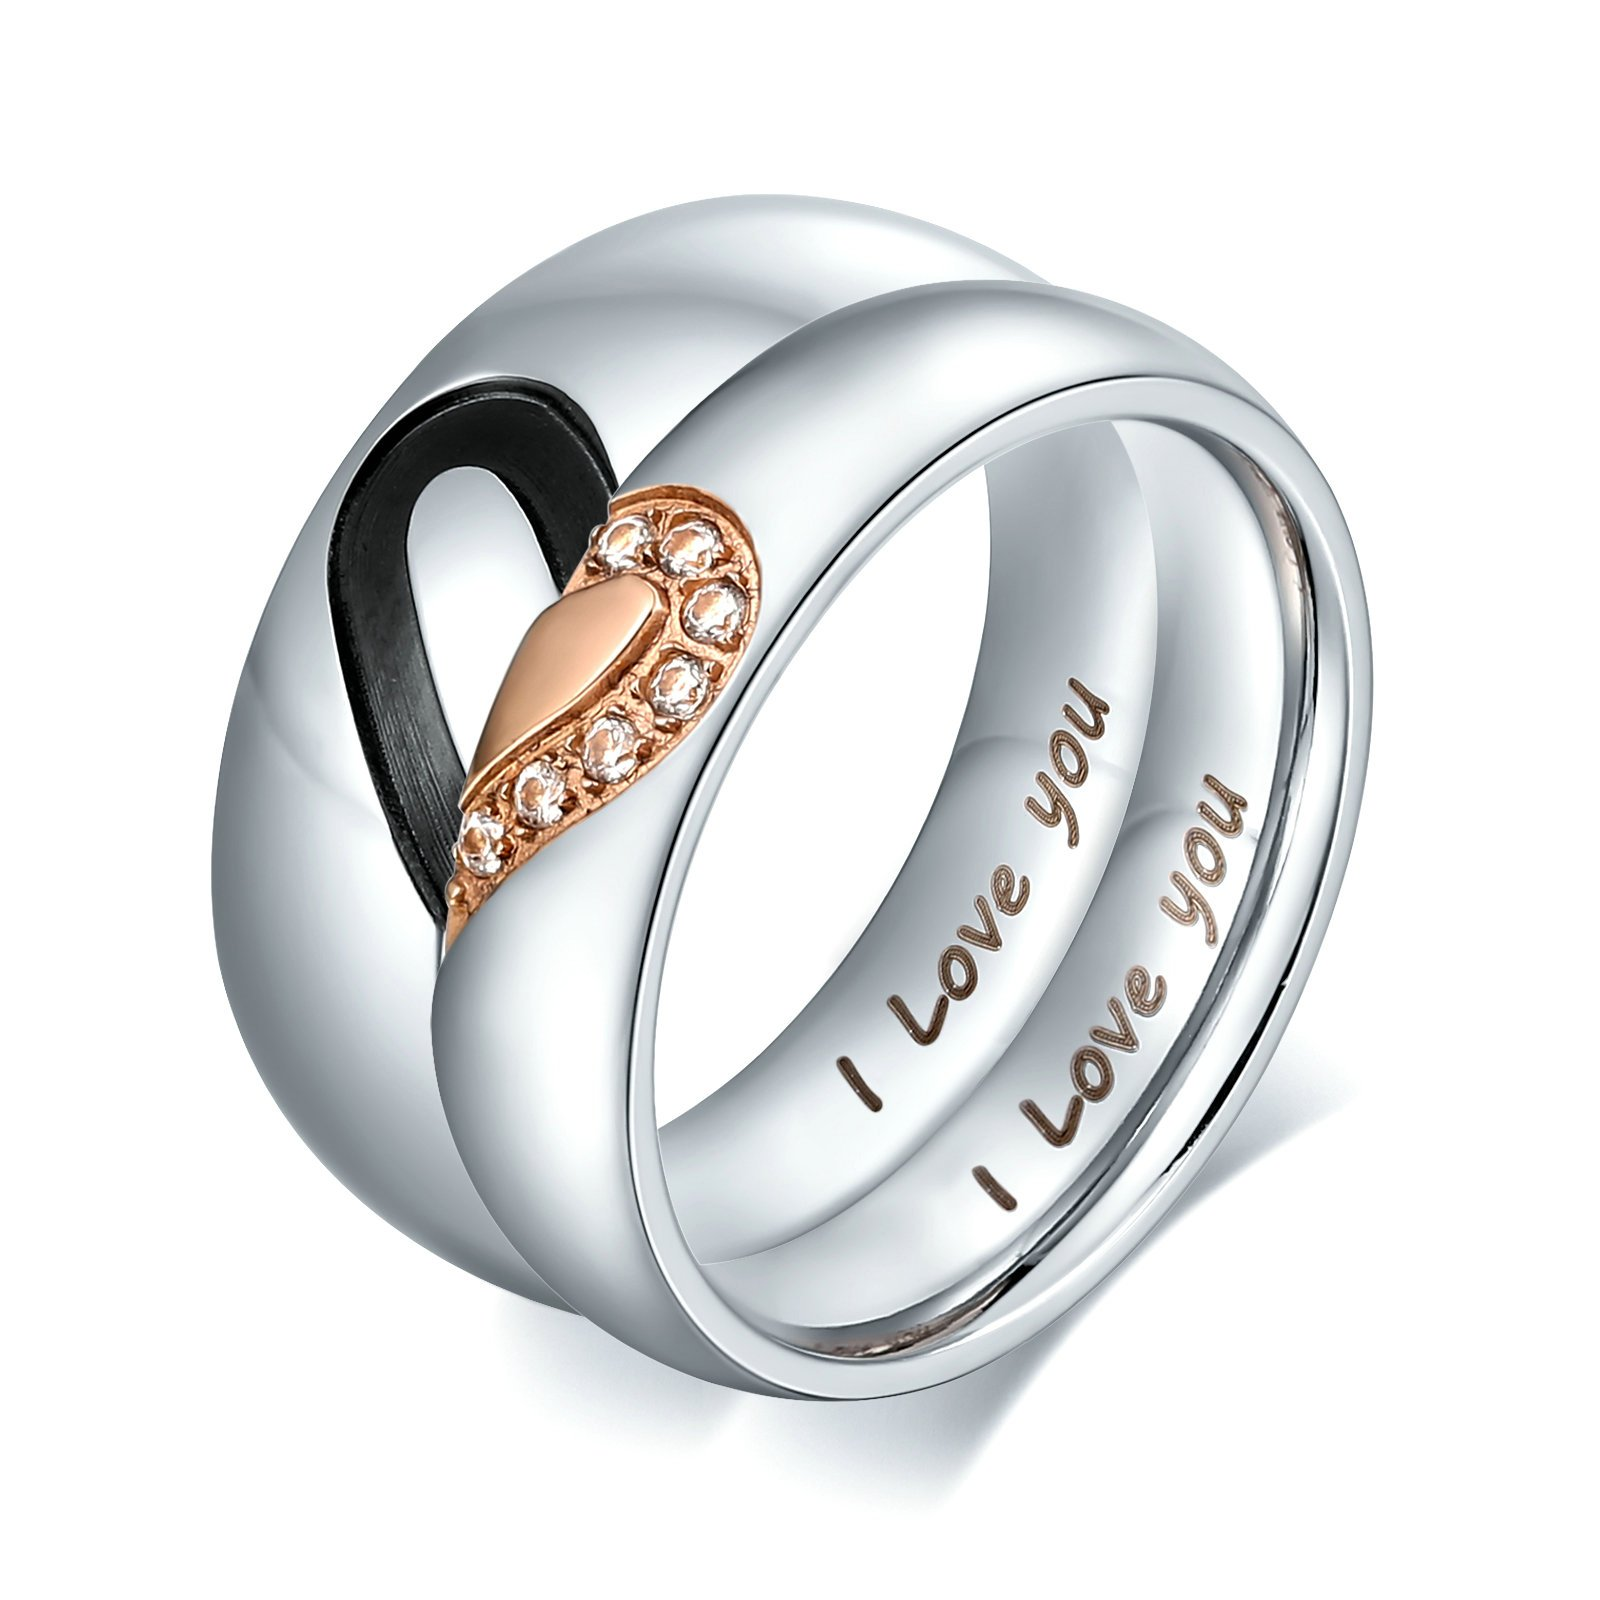 Aienid Women Gold Wedding Bands Stainless Steel Puzzle Heart with Cz Promise Engagement Ring Size 5